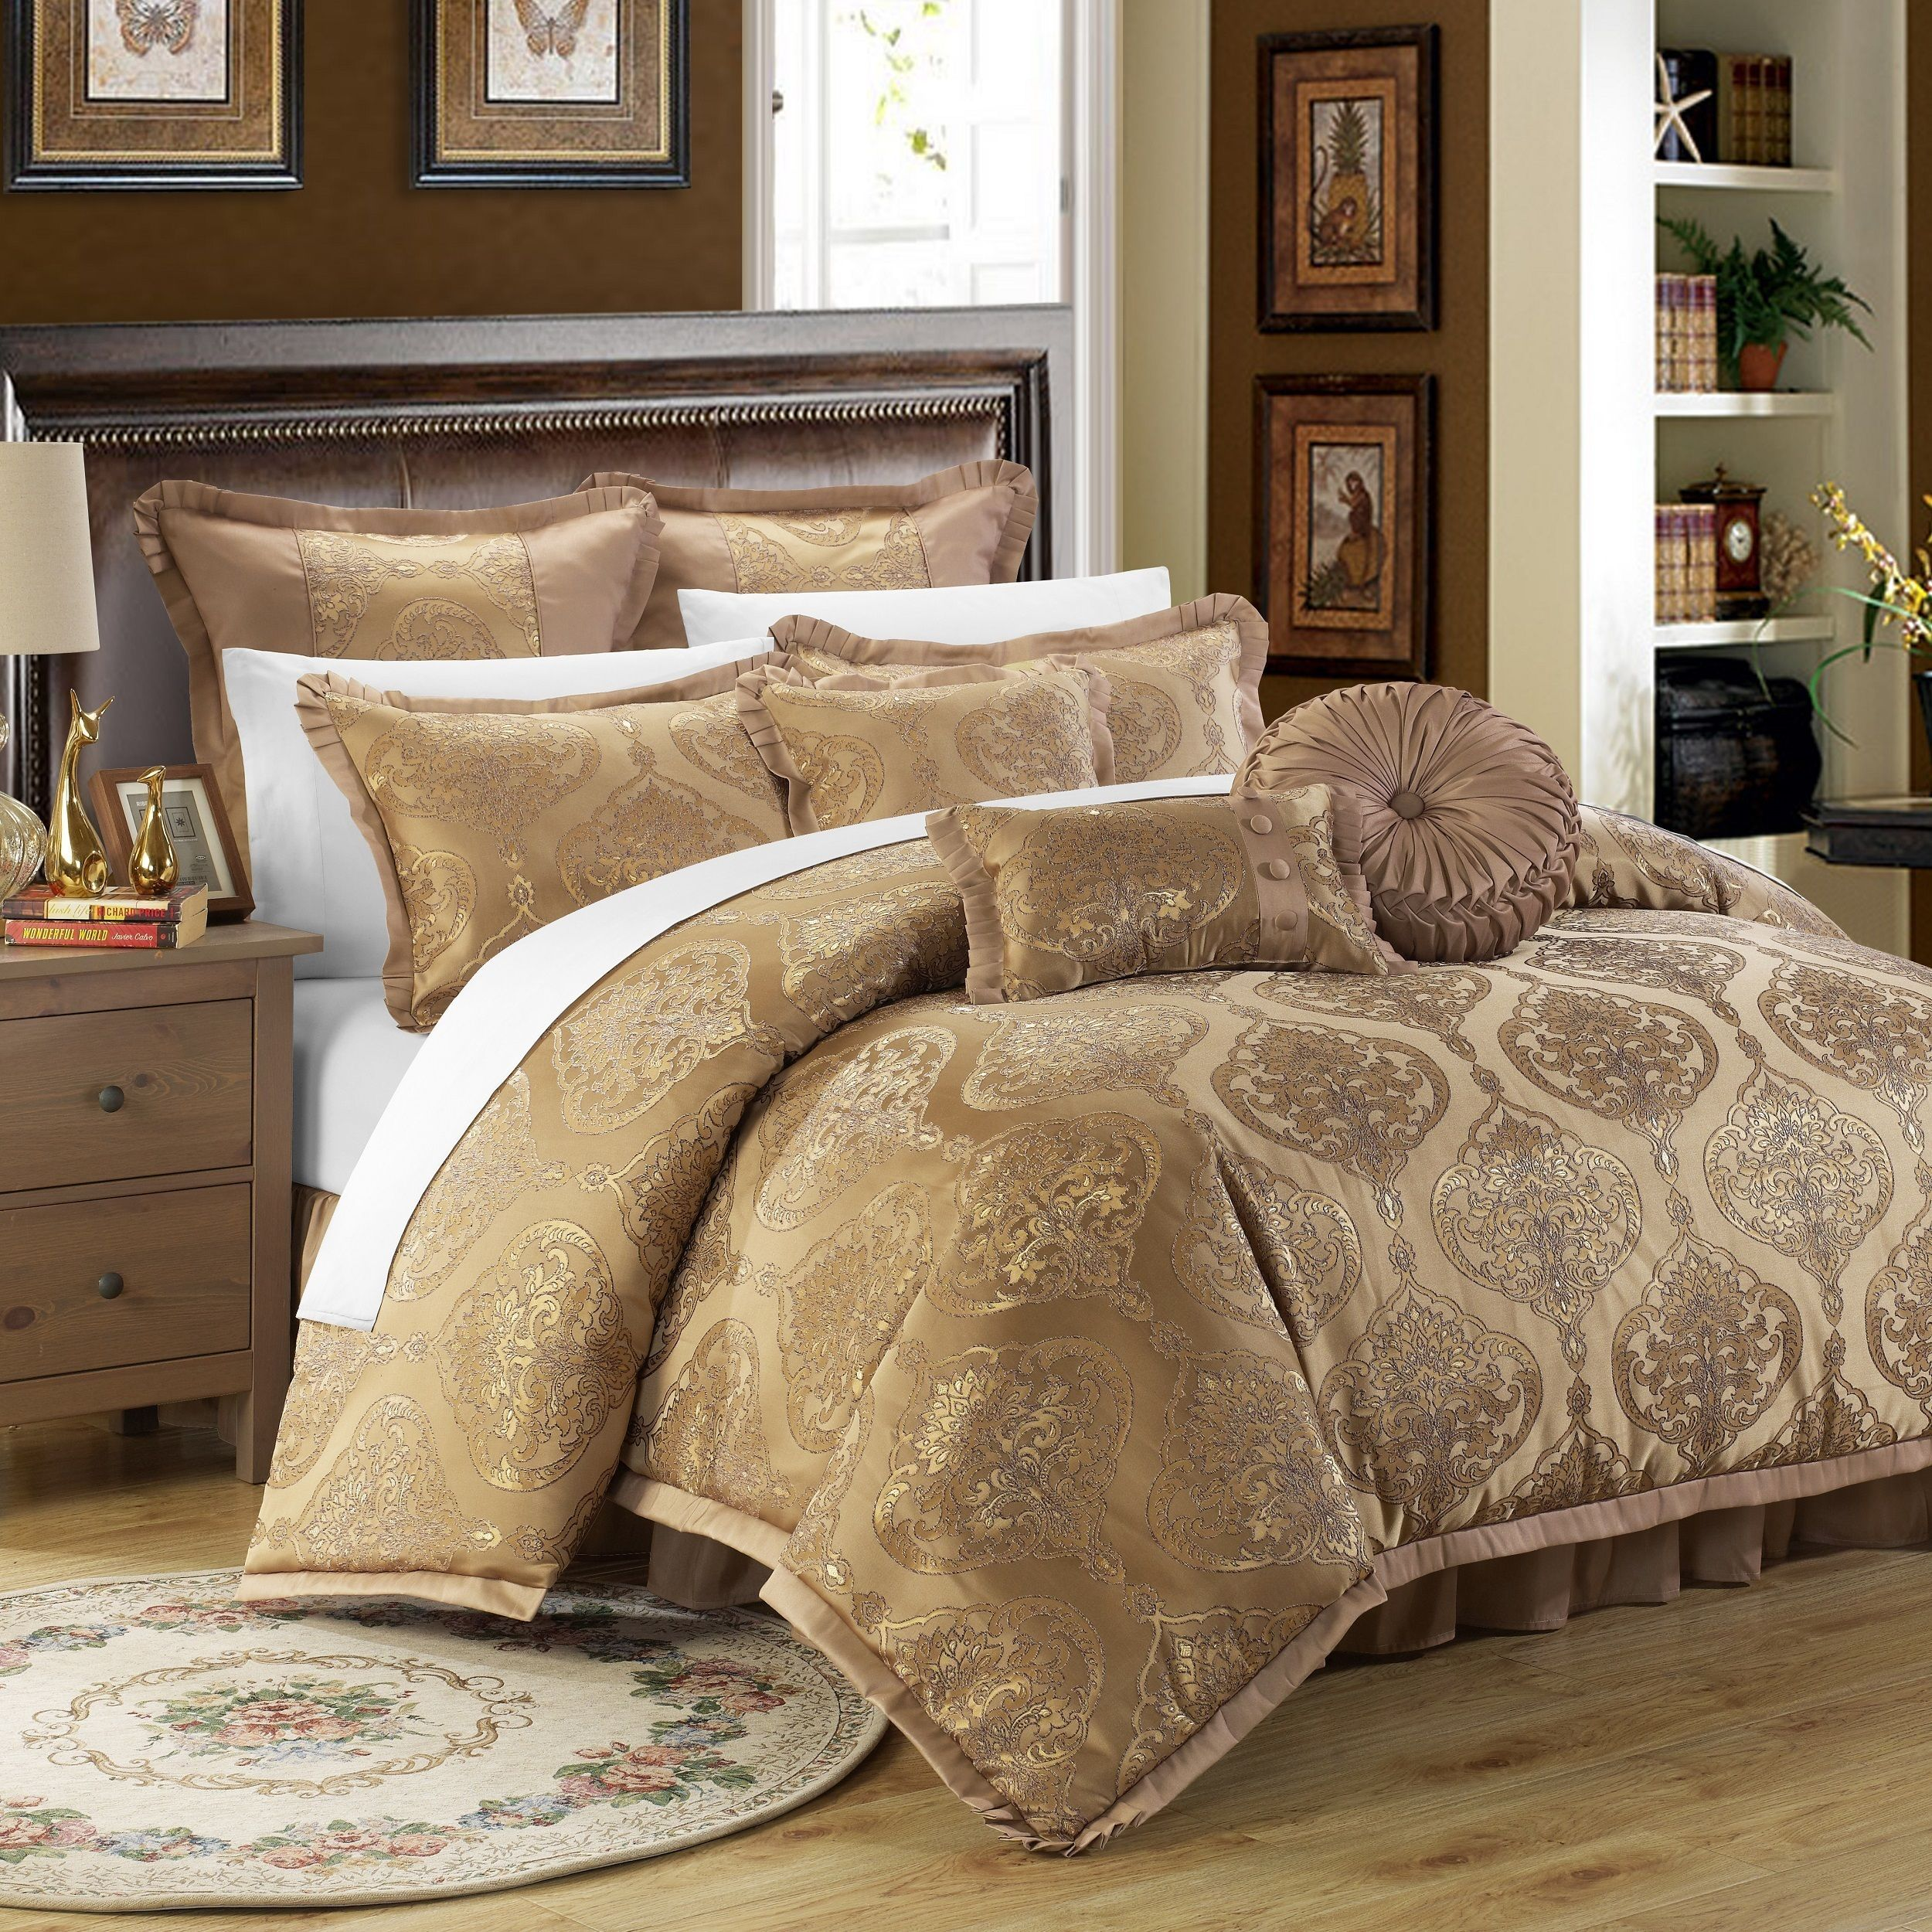 inspired by old world charm and crafted into pure bedding luxury rh pinterest com